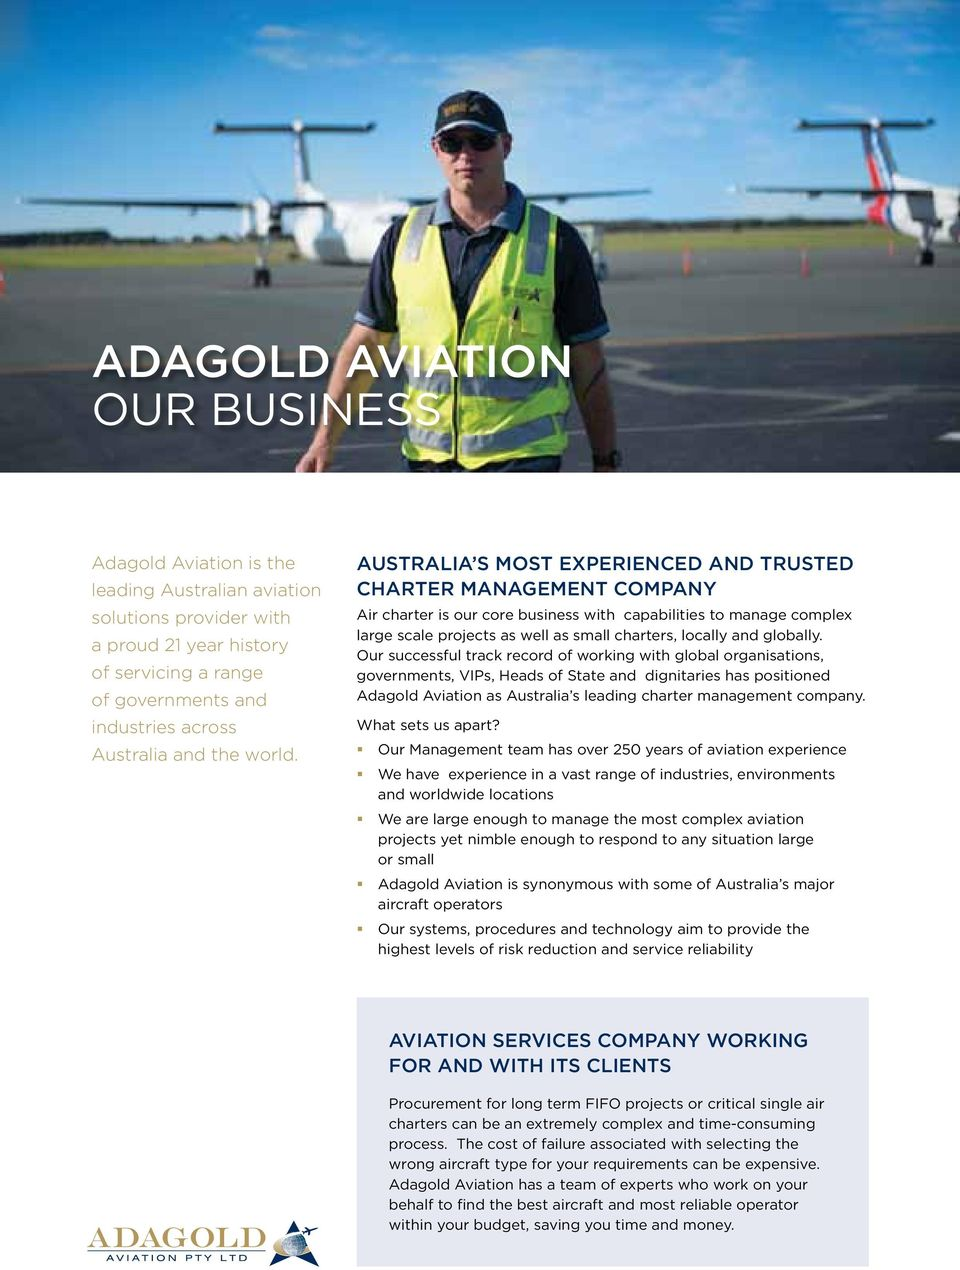 Australia s Most Experienced and Trusted Charter Management Company Air charter is our core business with capabilities to manage complex large scale projects as well as small charters, locally and